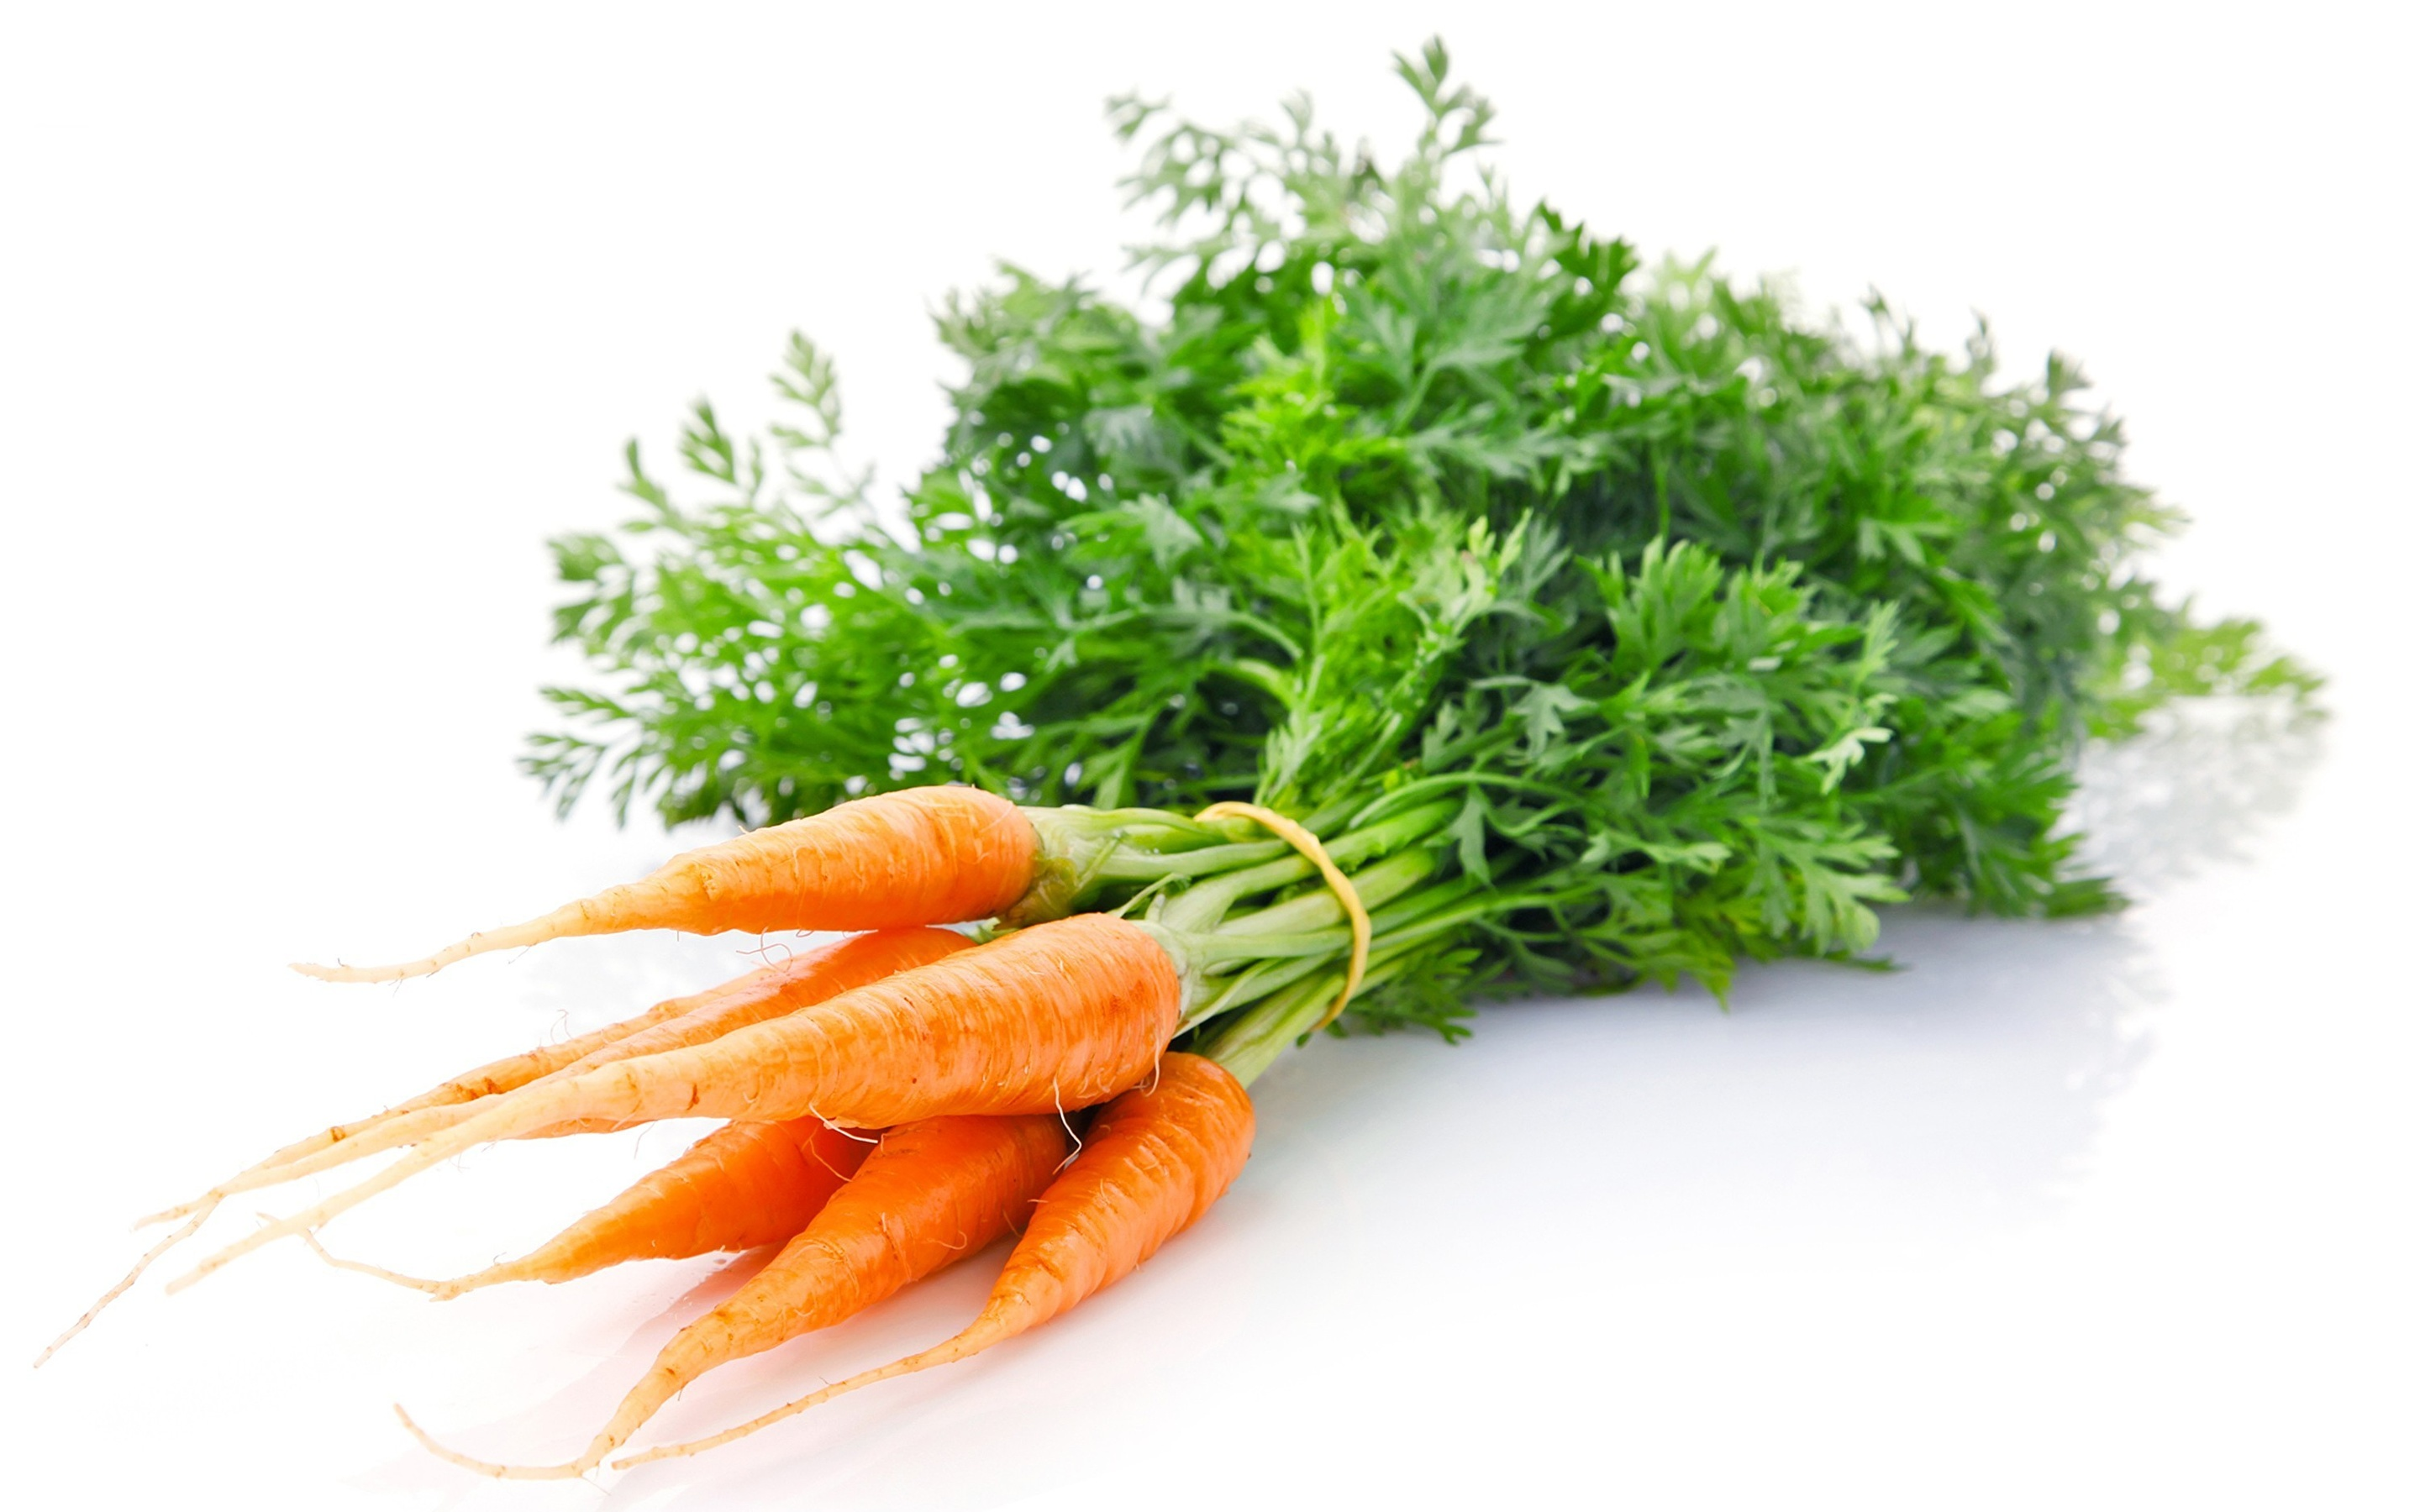 Carrots_White_background_502329_2880x1800.jpg